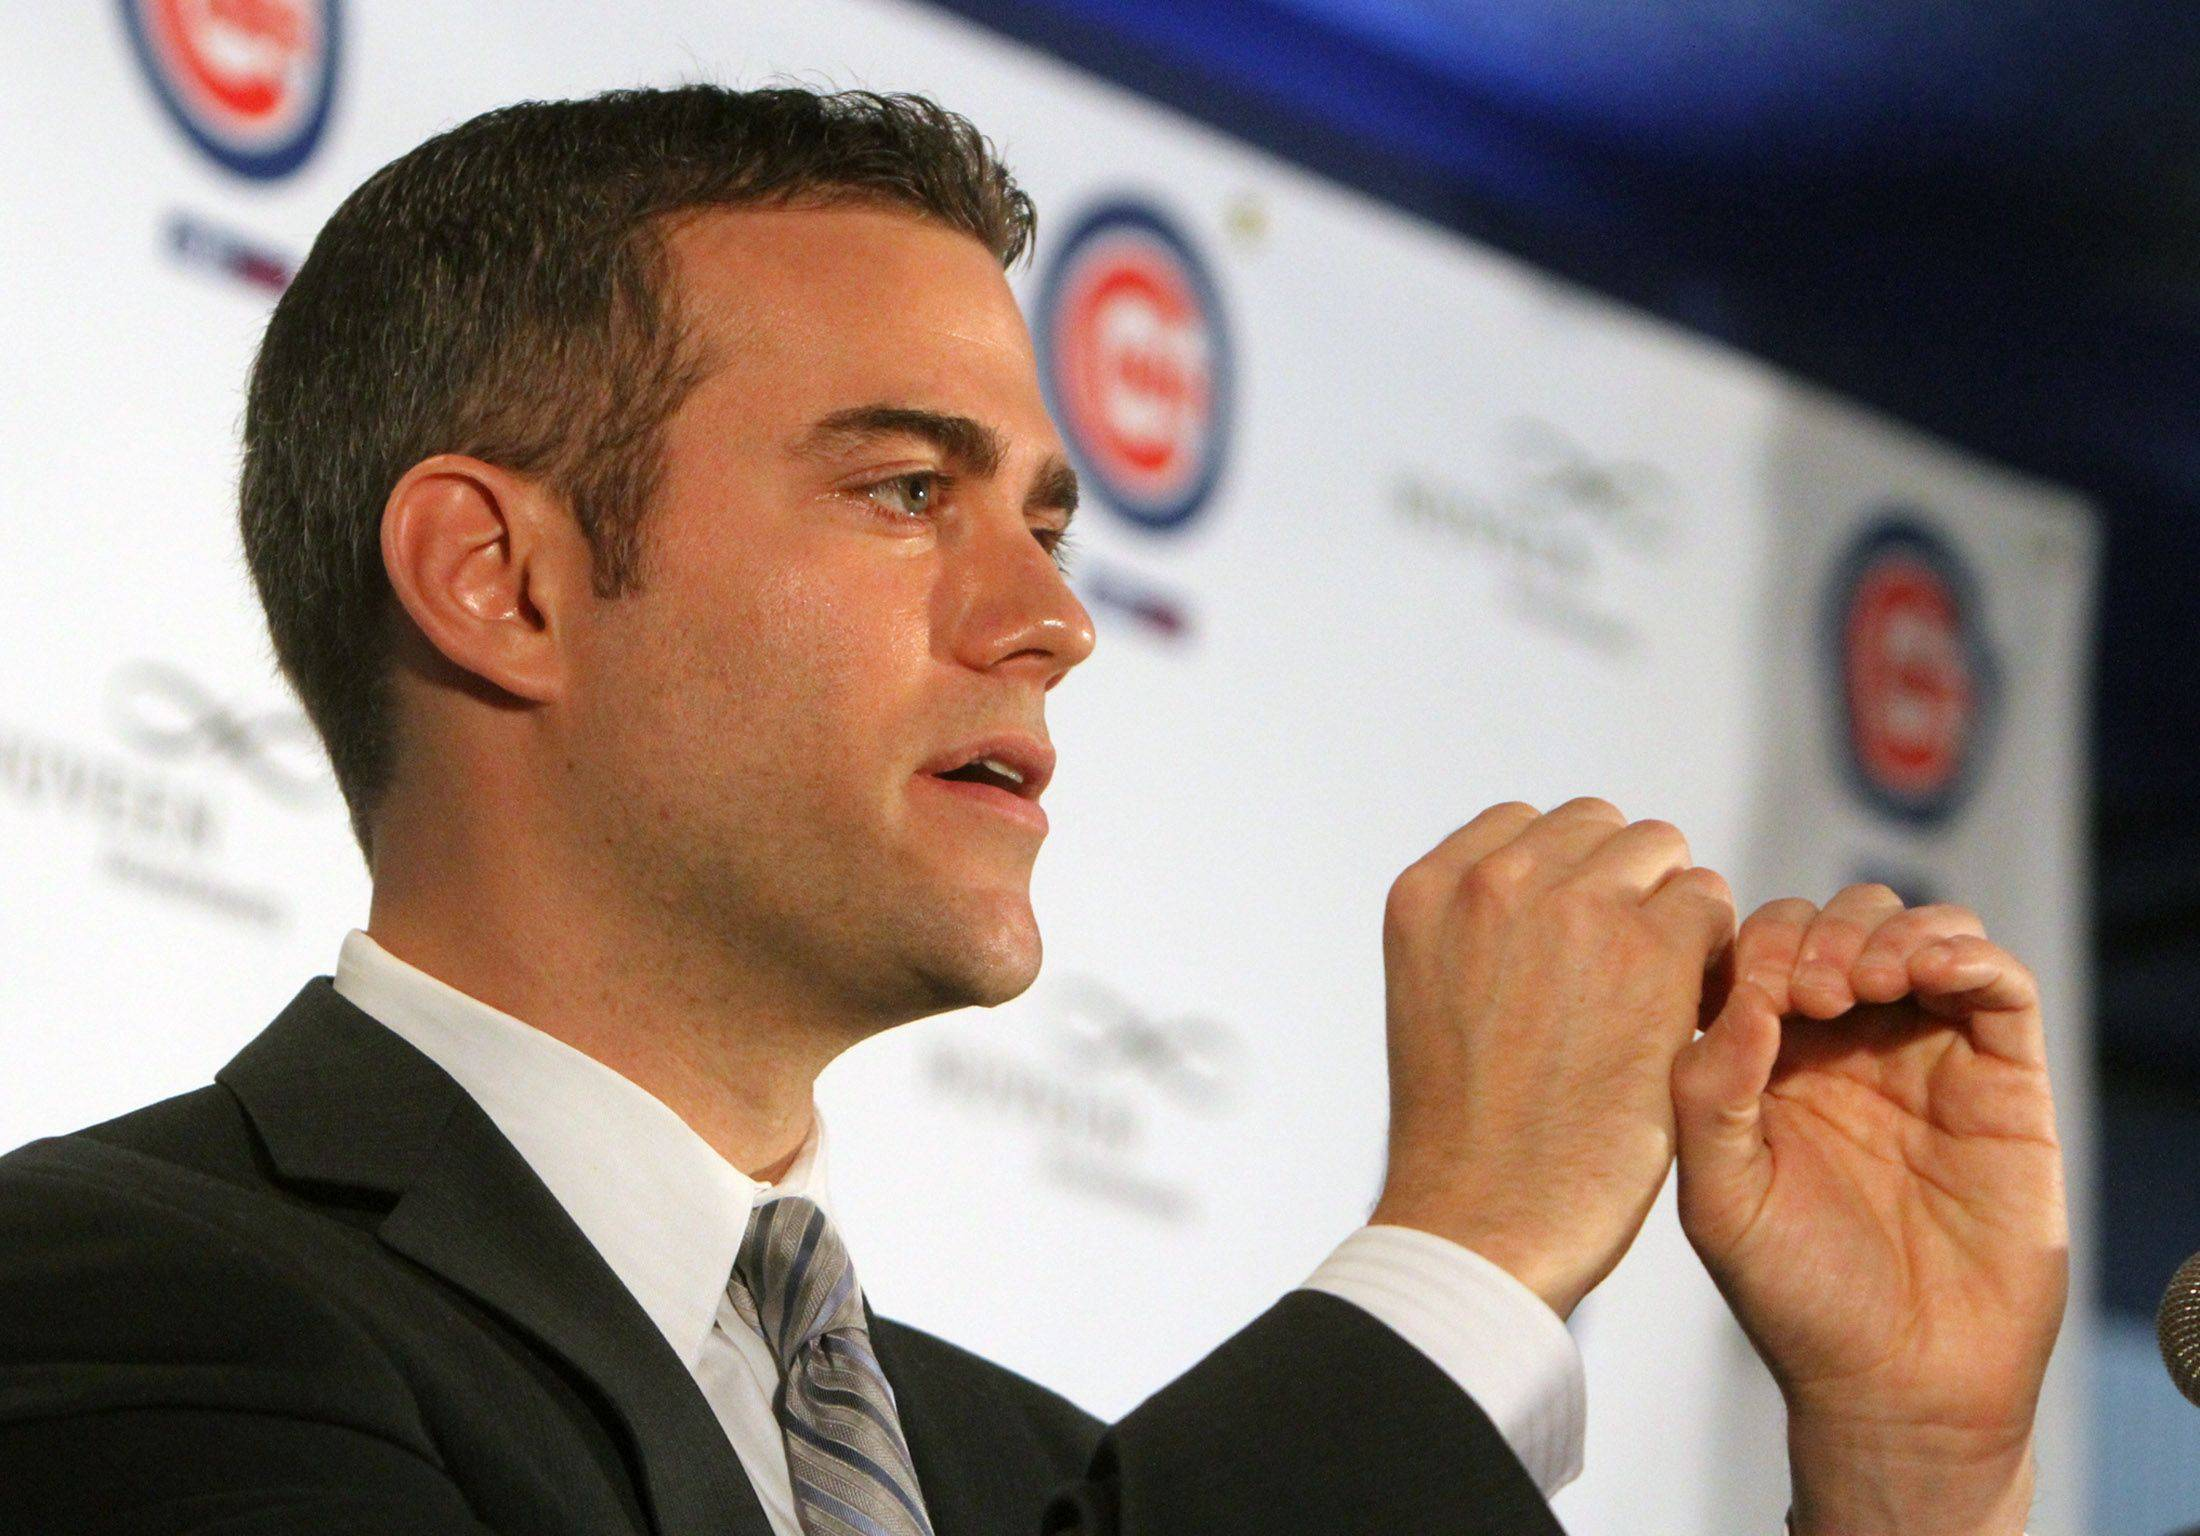 Chicago Cubs Chairman Tom Ricketts introduces Theo Epstein as the team's new president of baseball operations during a press conference at Wrigley Field in Chicago on Tuesday.